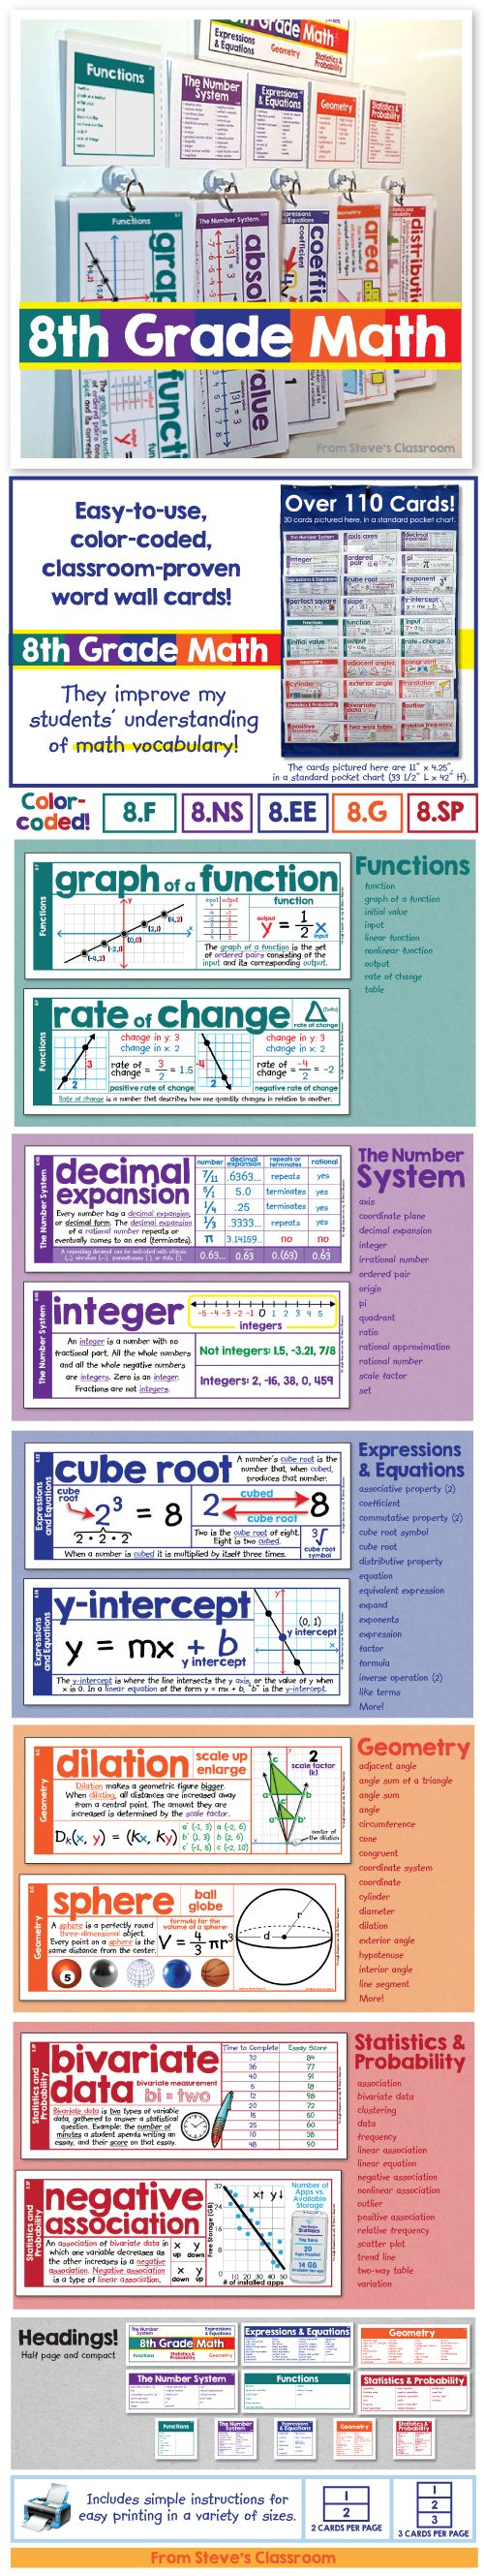 Word wall cards for 8th grade math. Every card has an example to help students grasp eighth grade math concepts like functions, the number system, expressions and equations, geometry, and statistics. The color coding makes it easy to stay organized and identify the different domains. You can even print them smaller and black & white for pasting into interactive journals.